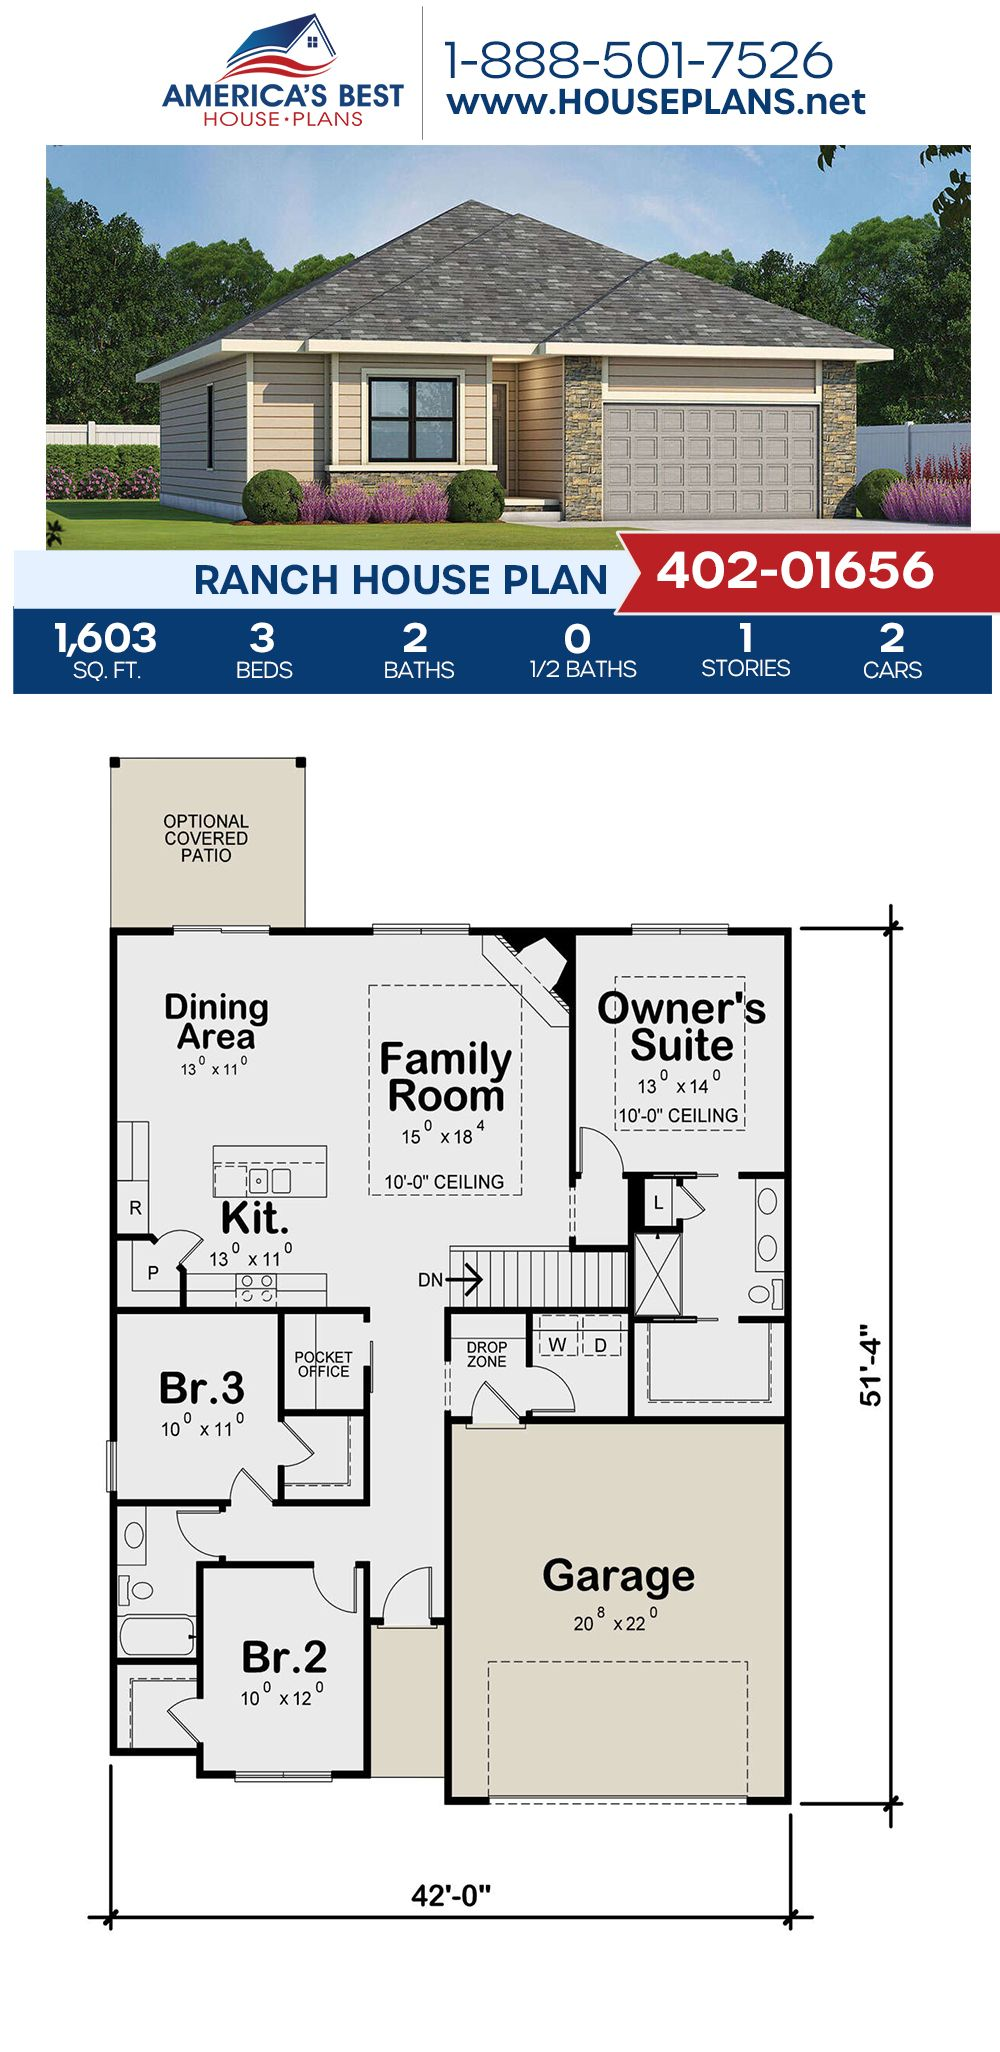 House Plan 402 01656 Ranch Plan 1 603 Square Feet 3 Bedrooms 2 Bathrooms In 2021 Country Style House Plans 3d House Plans Ranch House Plan